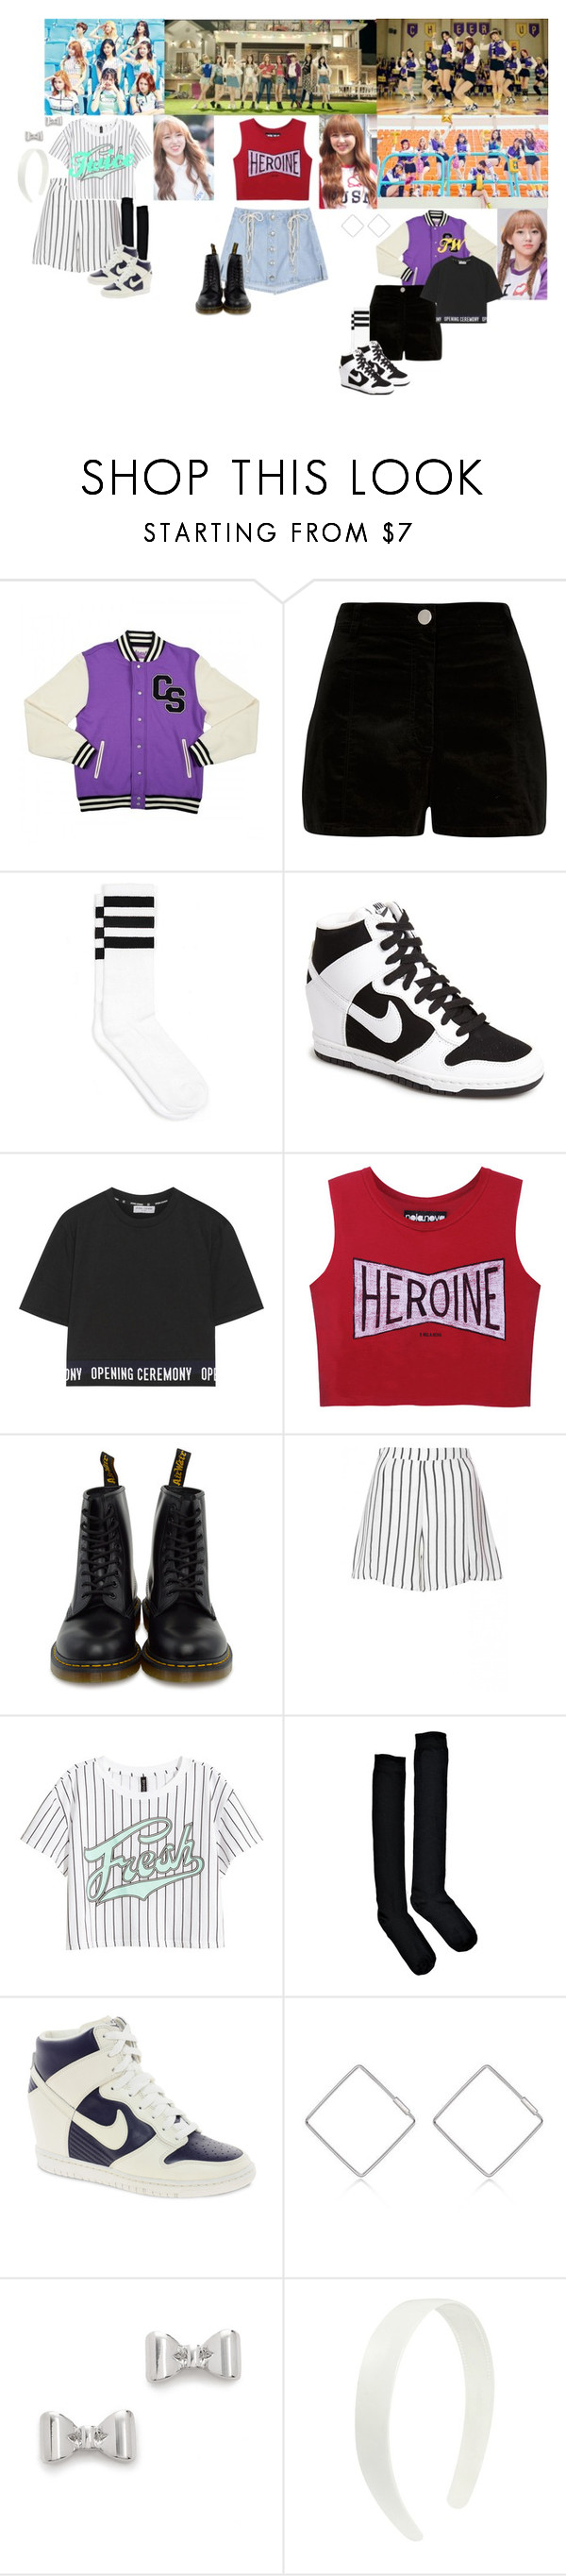 """""""Twice - Cheer Up MV"""" by jadapotterkpoplover ❤ liked on Polyvore featuring River Island, NIKE, Opening Ceremony, Dr. Martens, H&M, Boohoo, J.ESTINA and Marc by Marc Jacobs"""